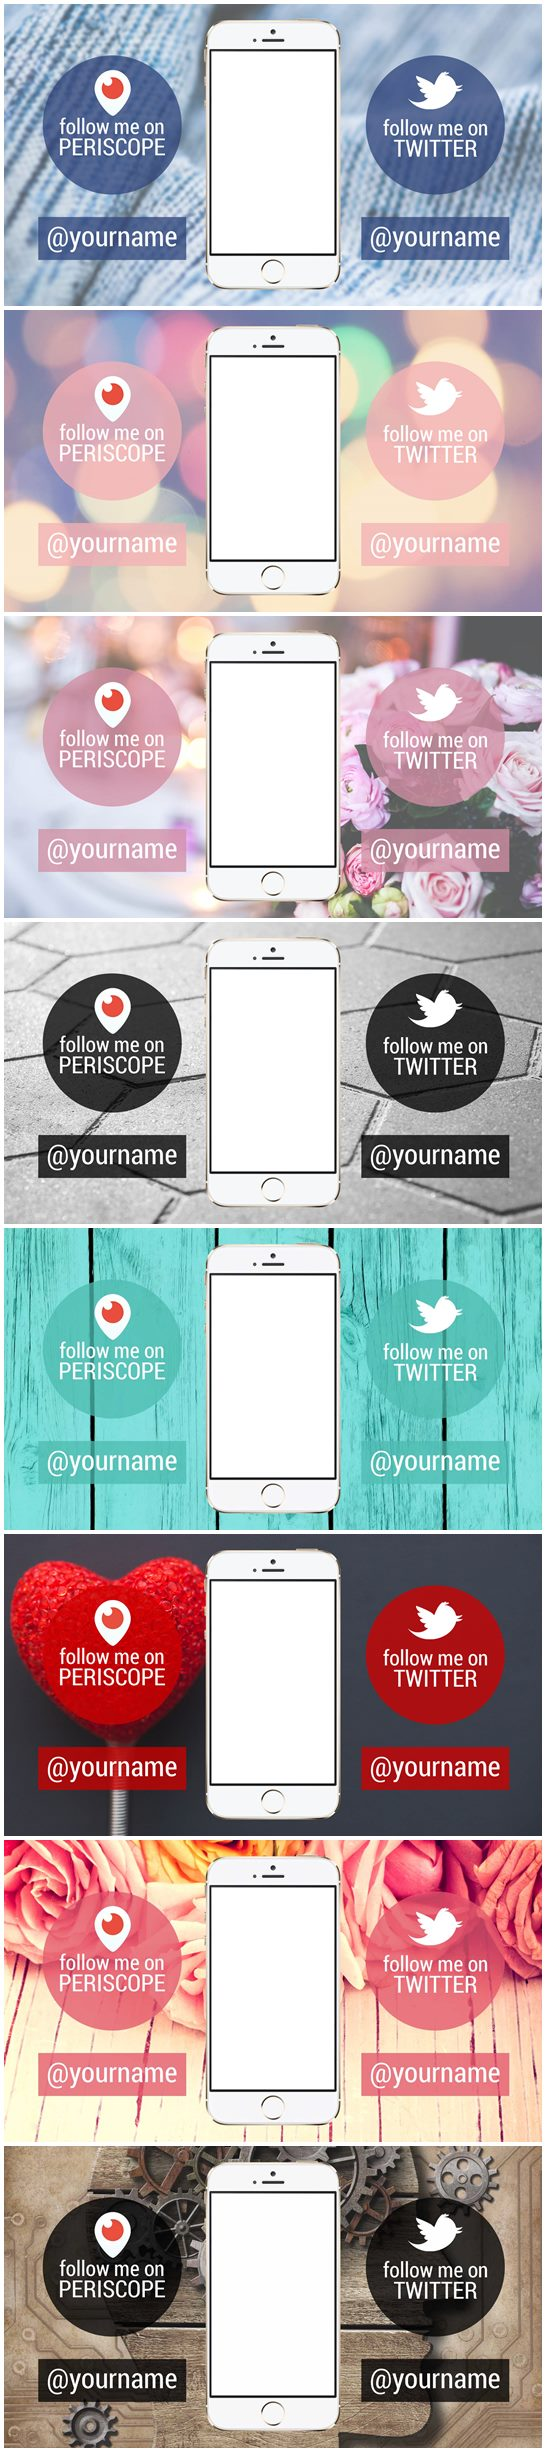 Youtube backgrounds for Periscope broadcasts. Only $5 >> http://bit.ly/katiep_periscope